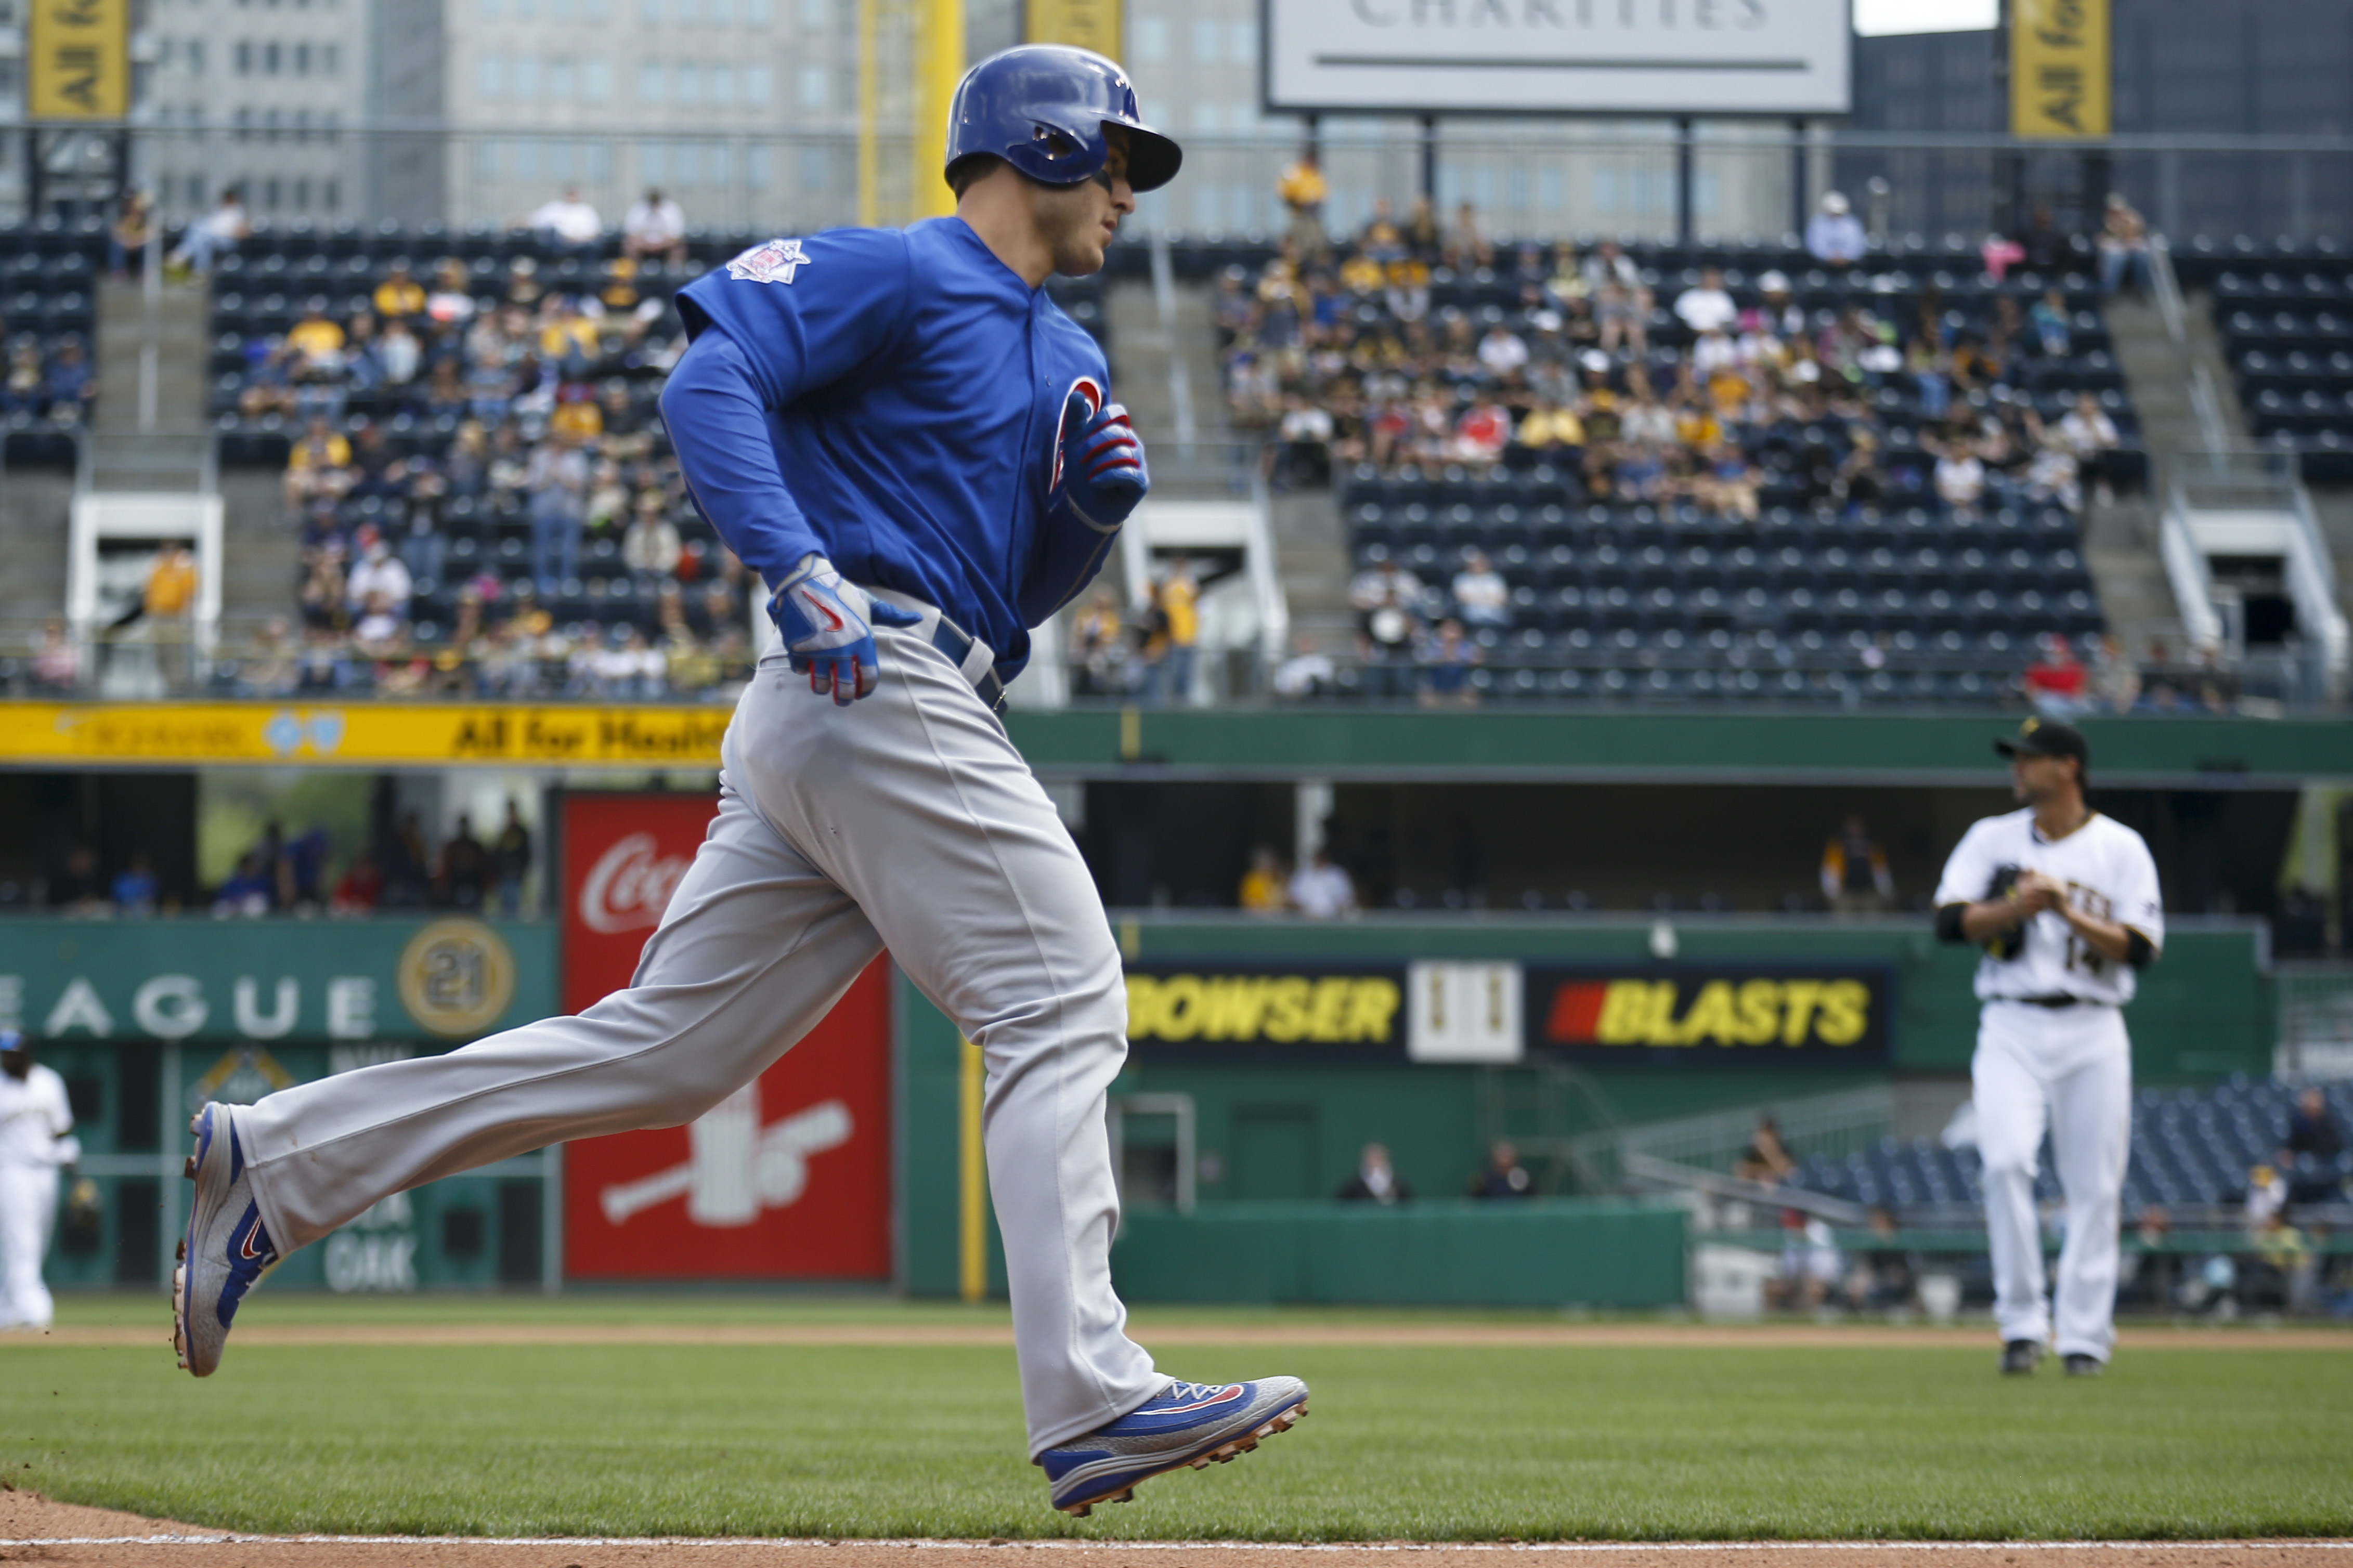 Chicago Cubs' Anthony Rizzo, left, rounds third in front of Pittsburgh Pirates relief pitcher Ryan Vogelsong after hitting a solo home run off him in the seventh inning of a baseball game, Wednesday, May 4, 2016, in Pittsburgh. (AP Photo/Keith Srakocic)